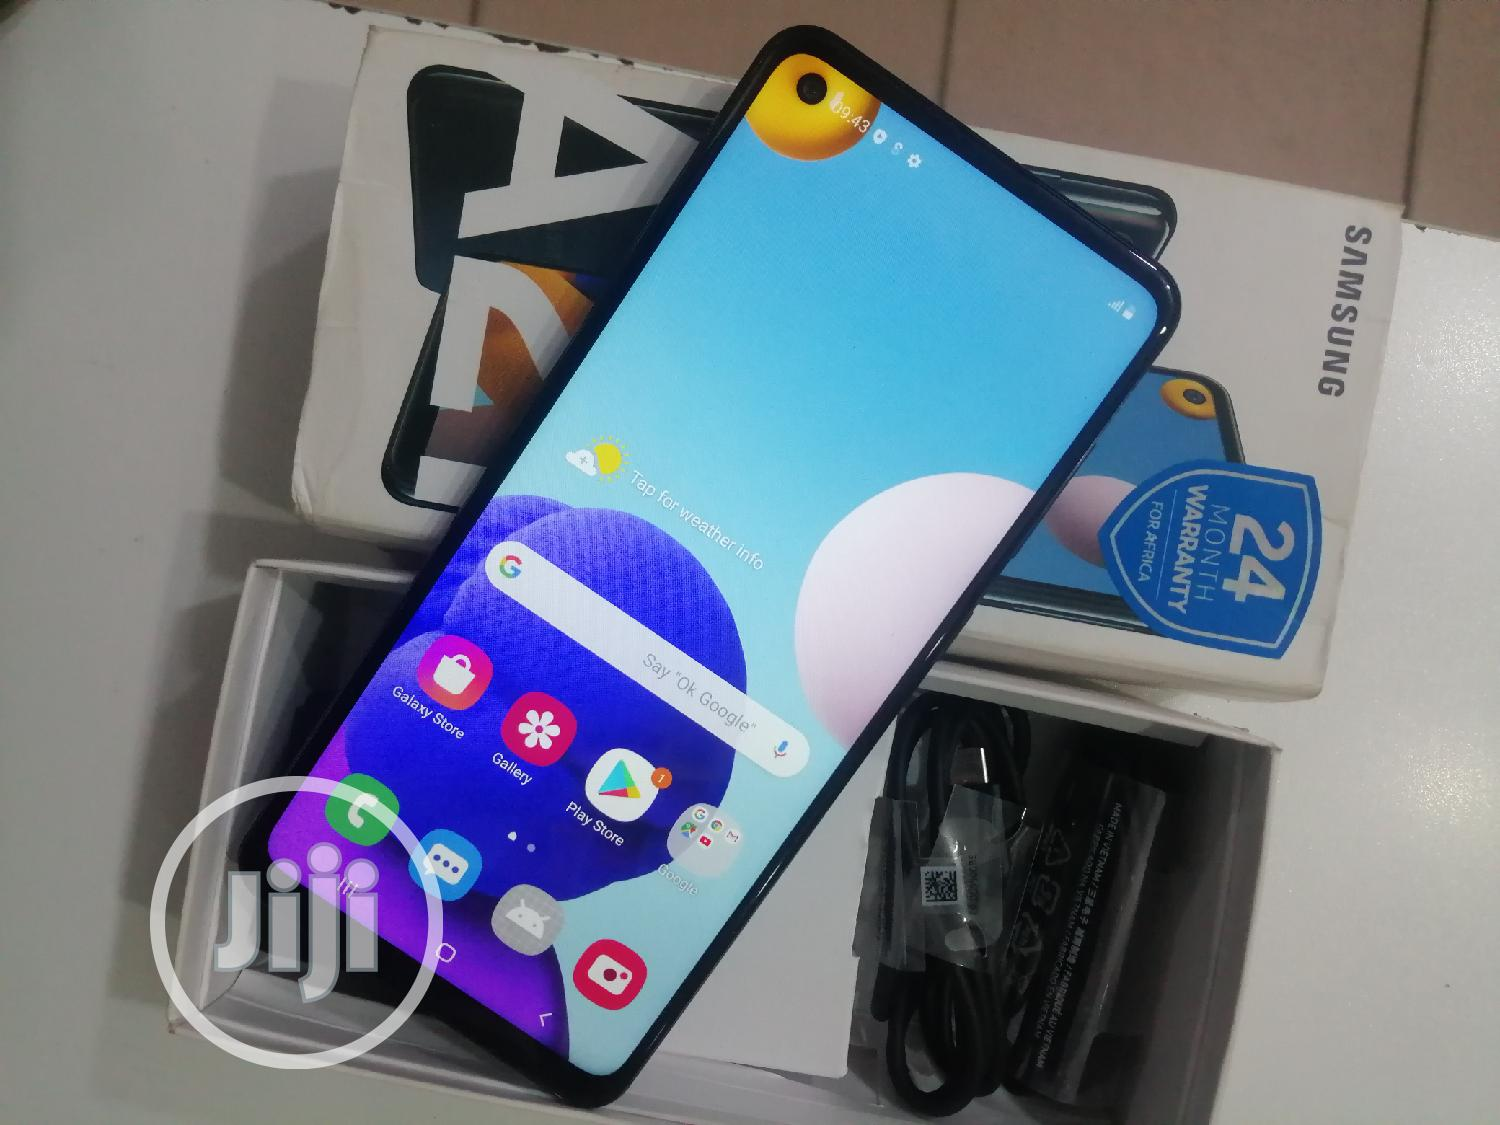 Samsung Galaxy A21s 64 GB Black | Mobile Phones for sale in Wuse 2, Abuja (FCT) State, Nigeria